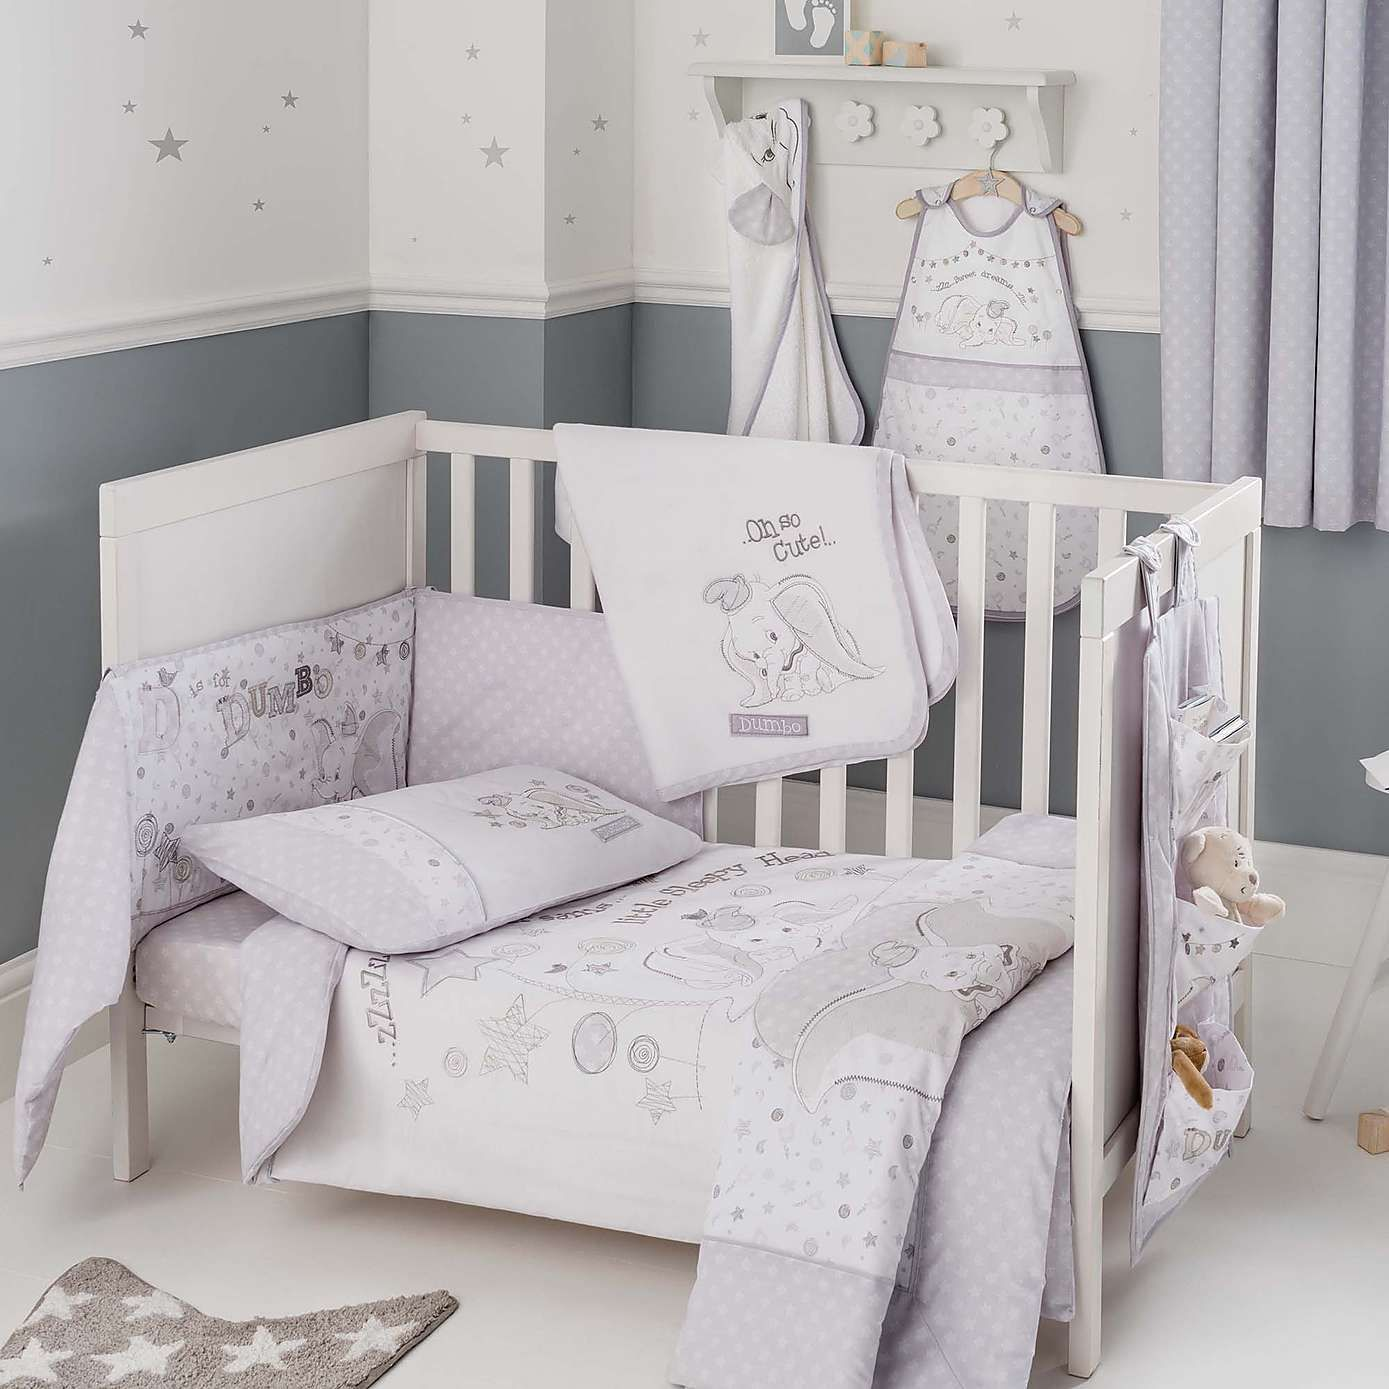 CUTE STAR **NEW LUXURY BABY BOY BEDDING SET for COT//BED BABY BLUE and GREY